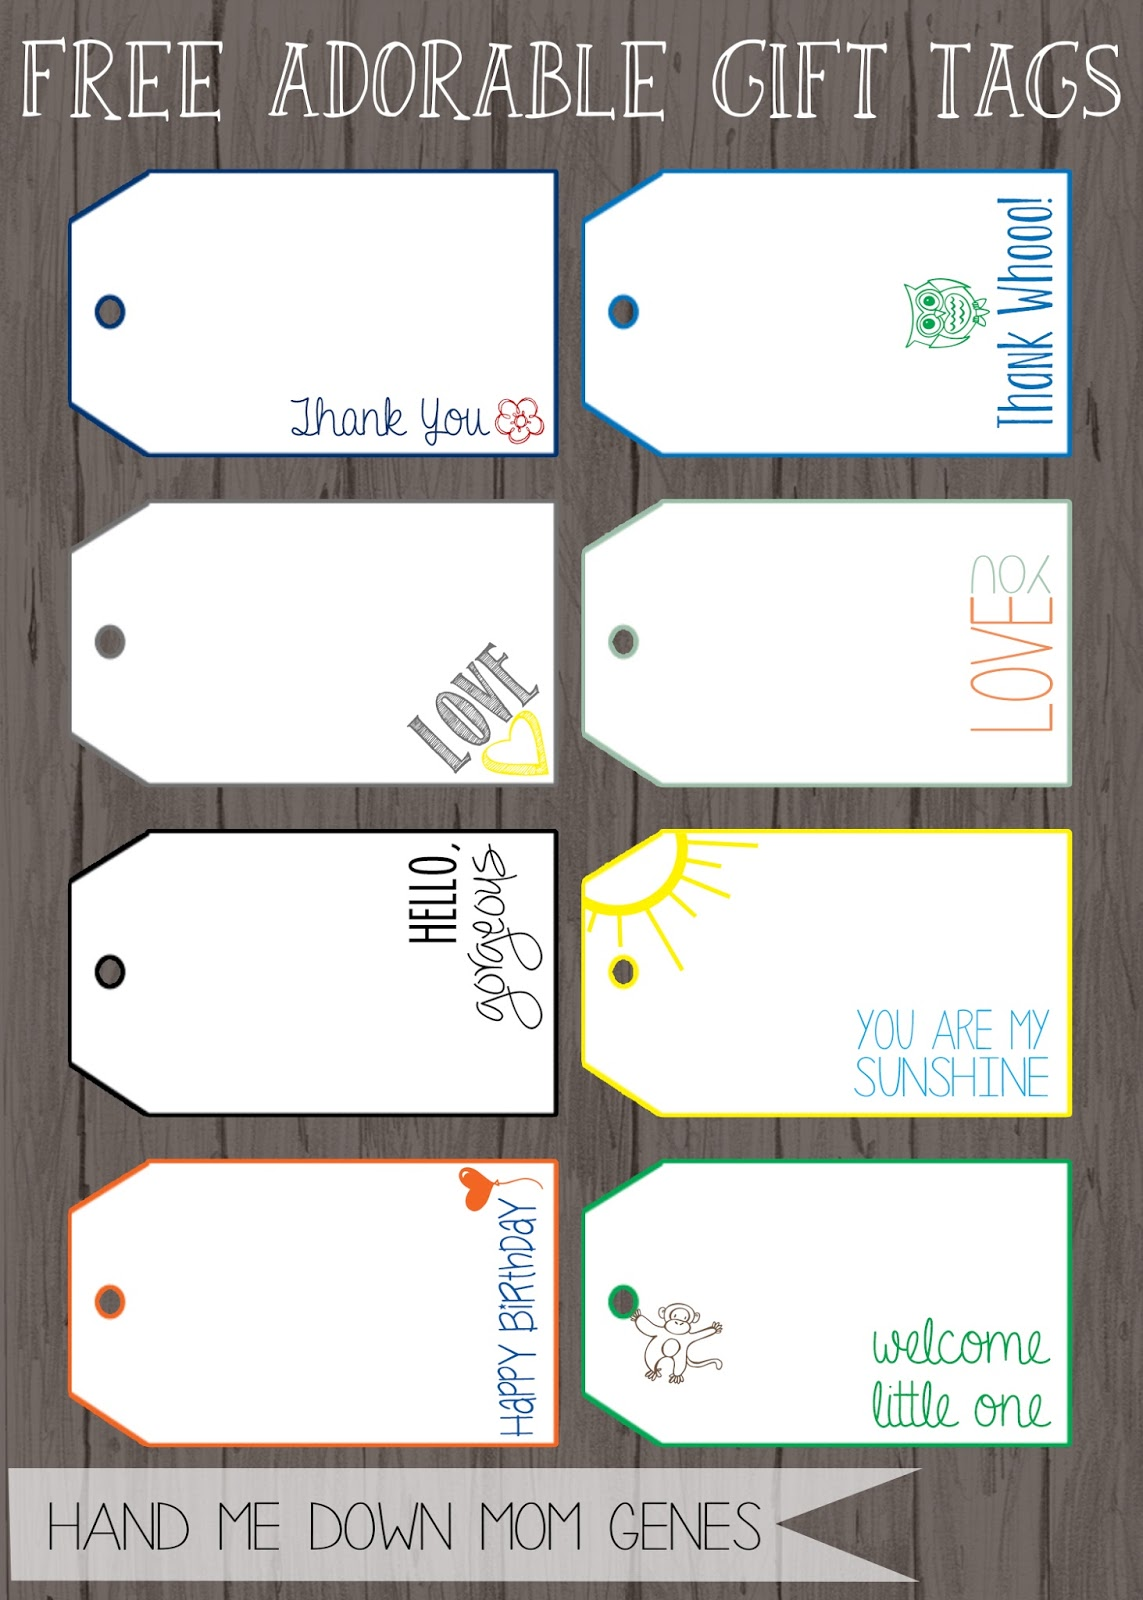 Hand Me Down Mom Genes: Free Adorable Gift Tags